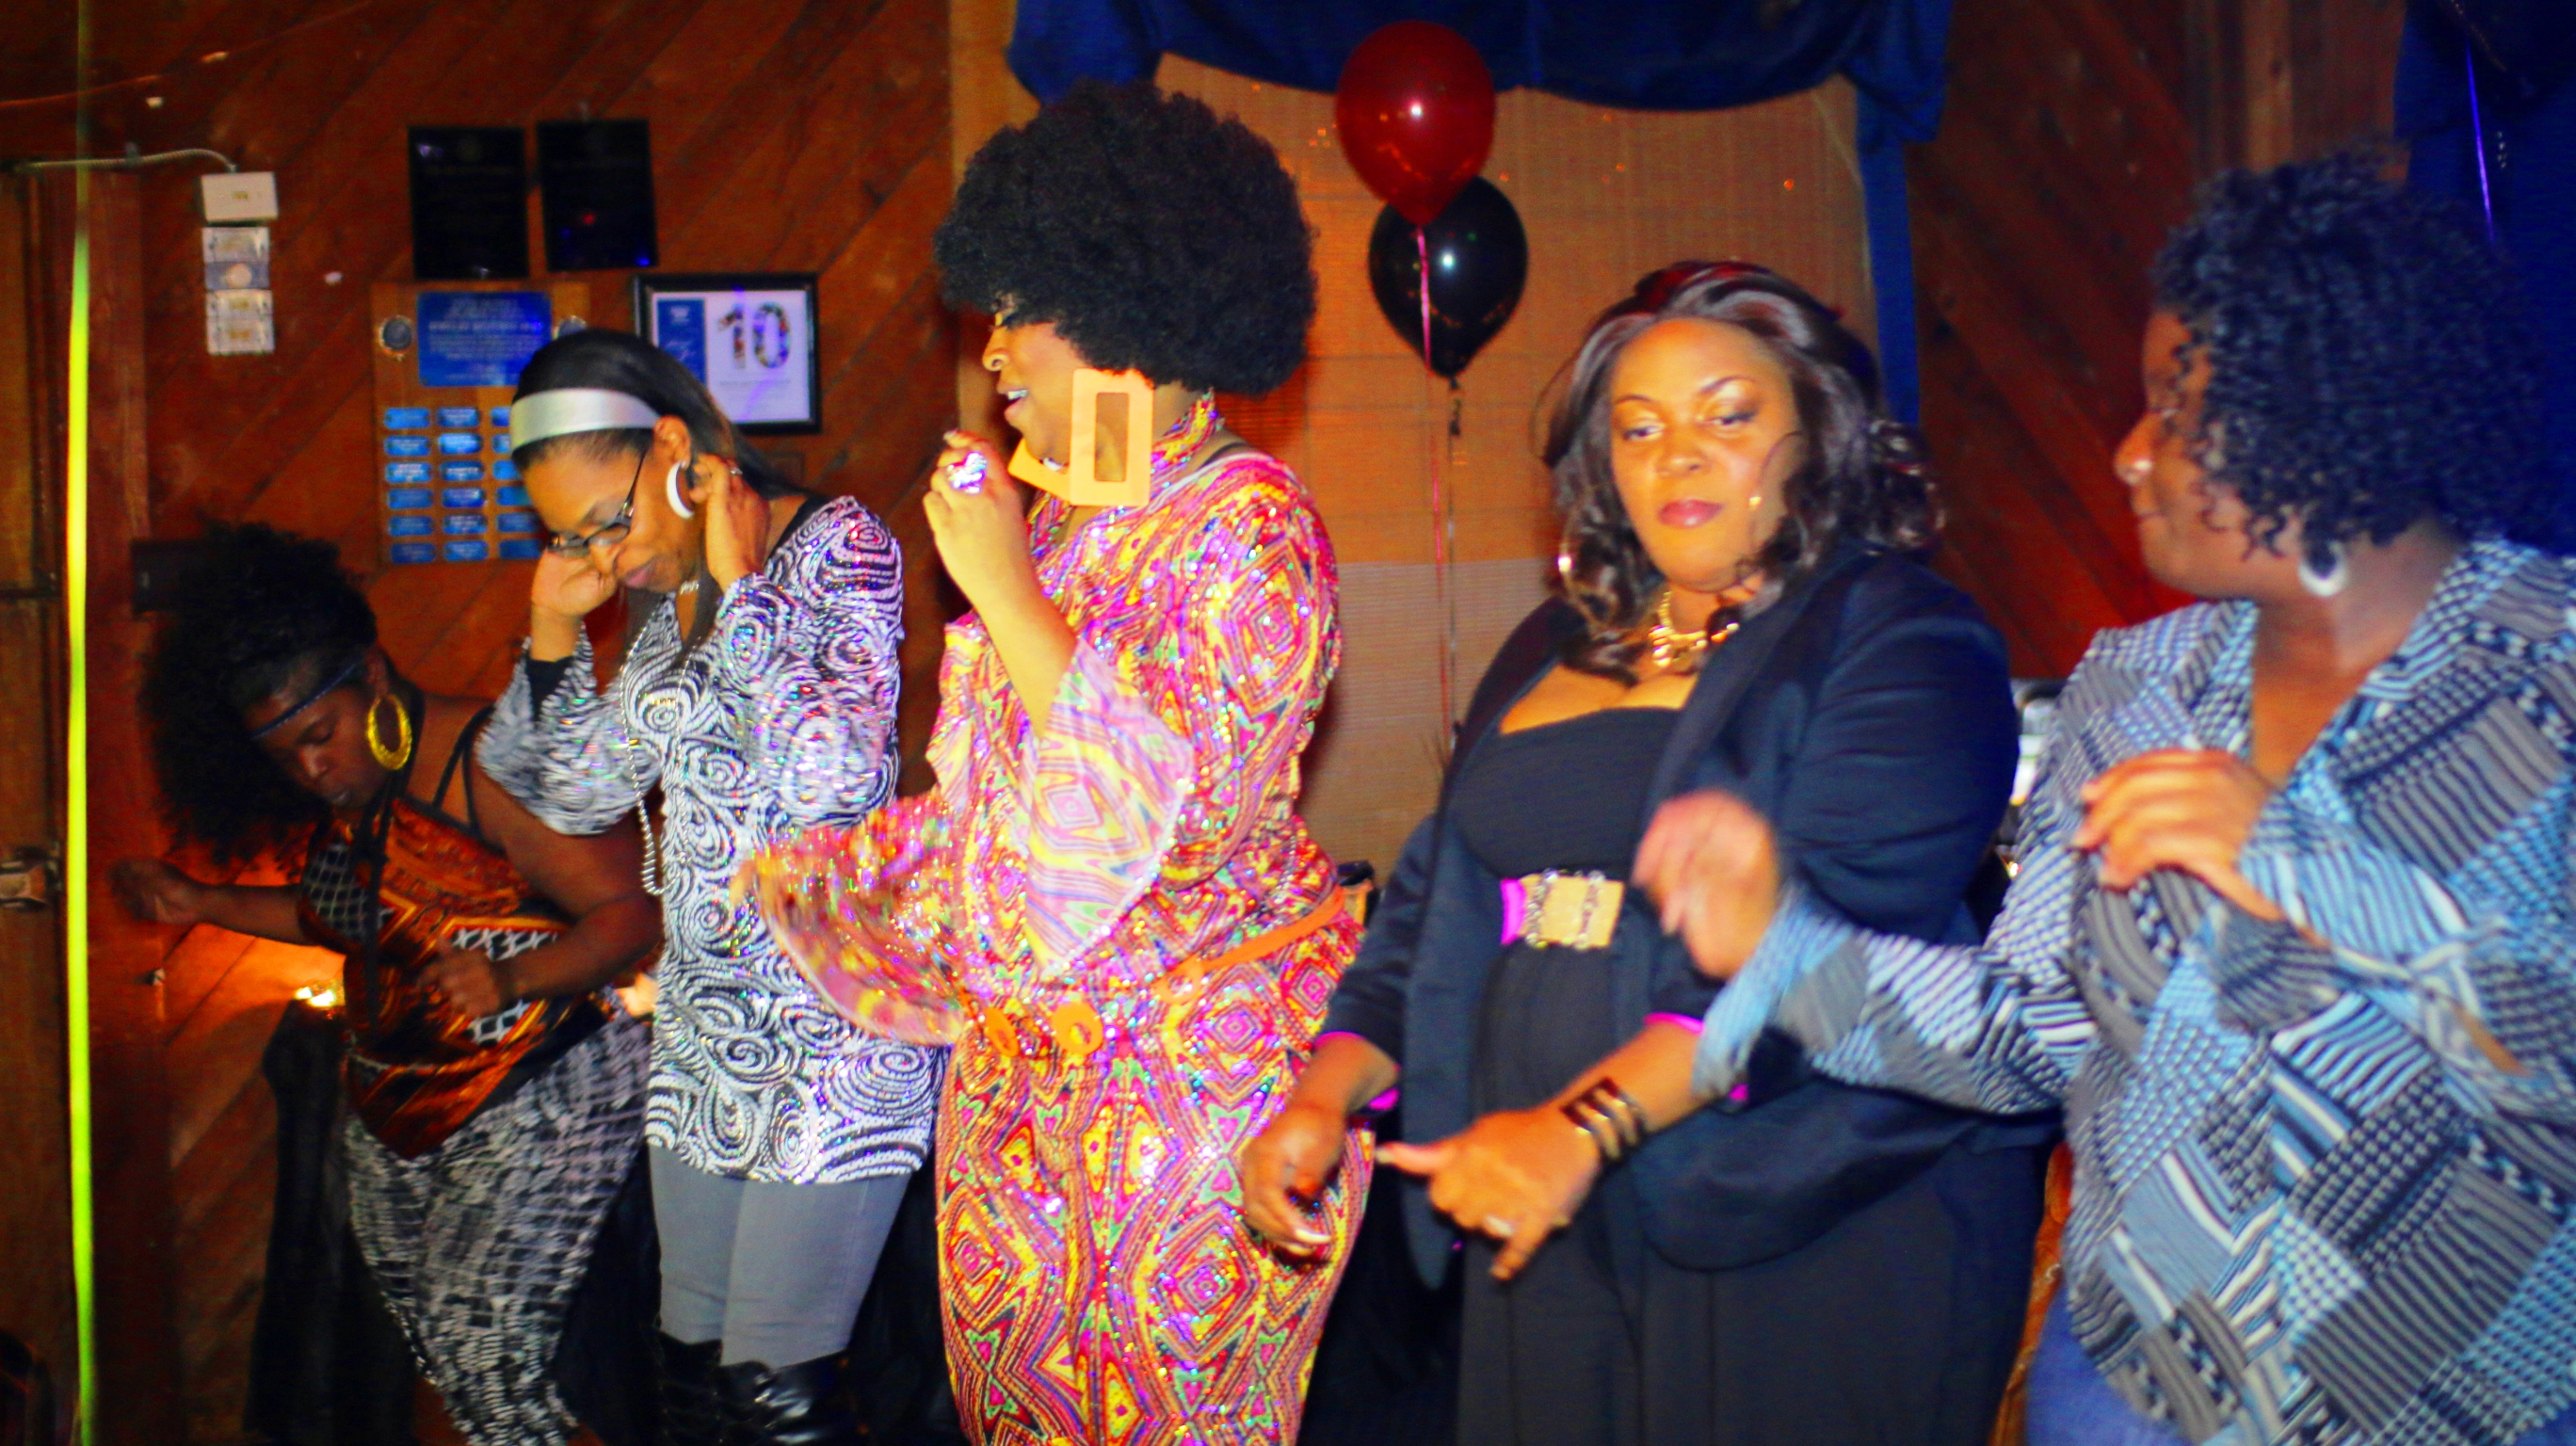 omb-photography-mix-pix-flix-indys-birthday-bash015